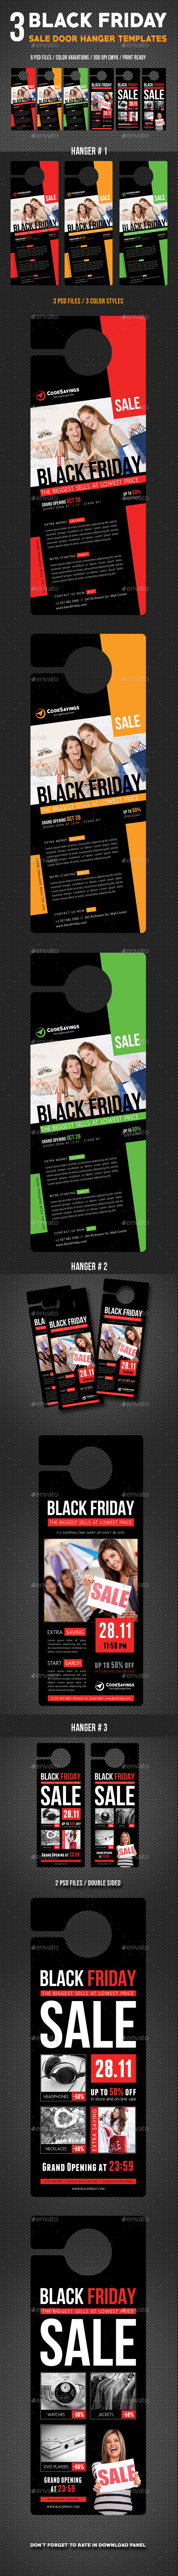 3 Black Friday Door Hanger Bundle - Miscellaneous Print Templates